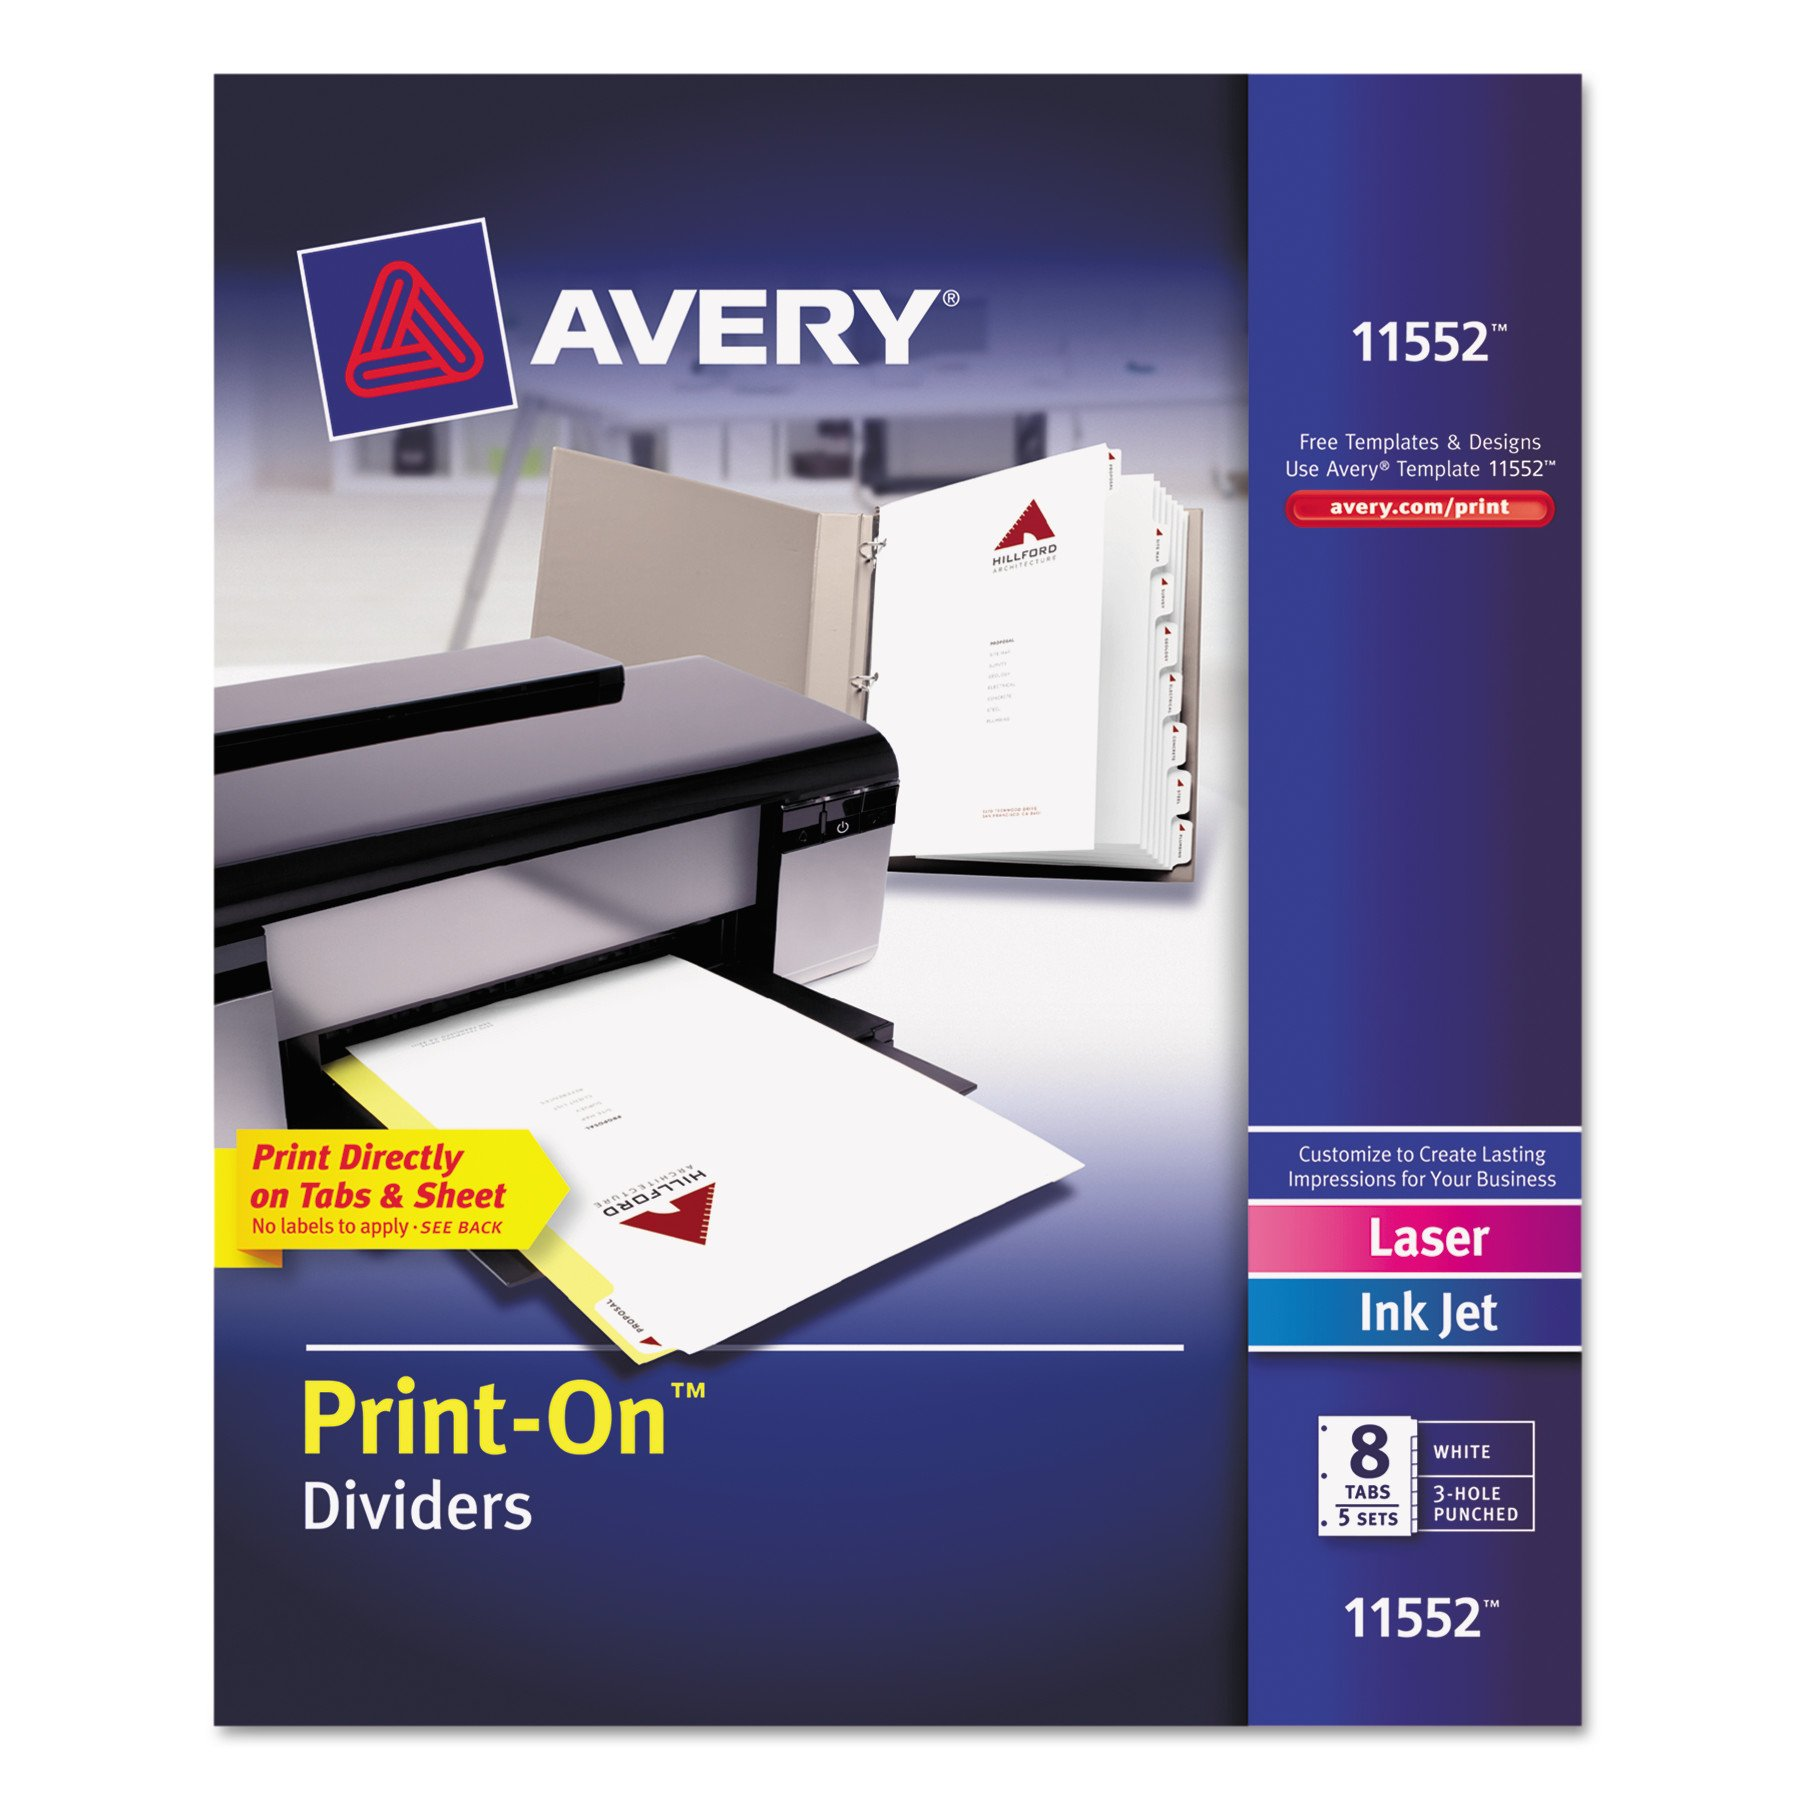 Avery Print-On Dividers, White, 8 Tabs, 5 Sets (11552)